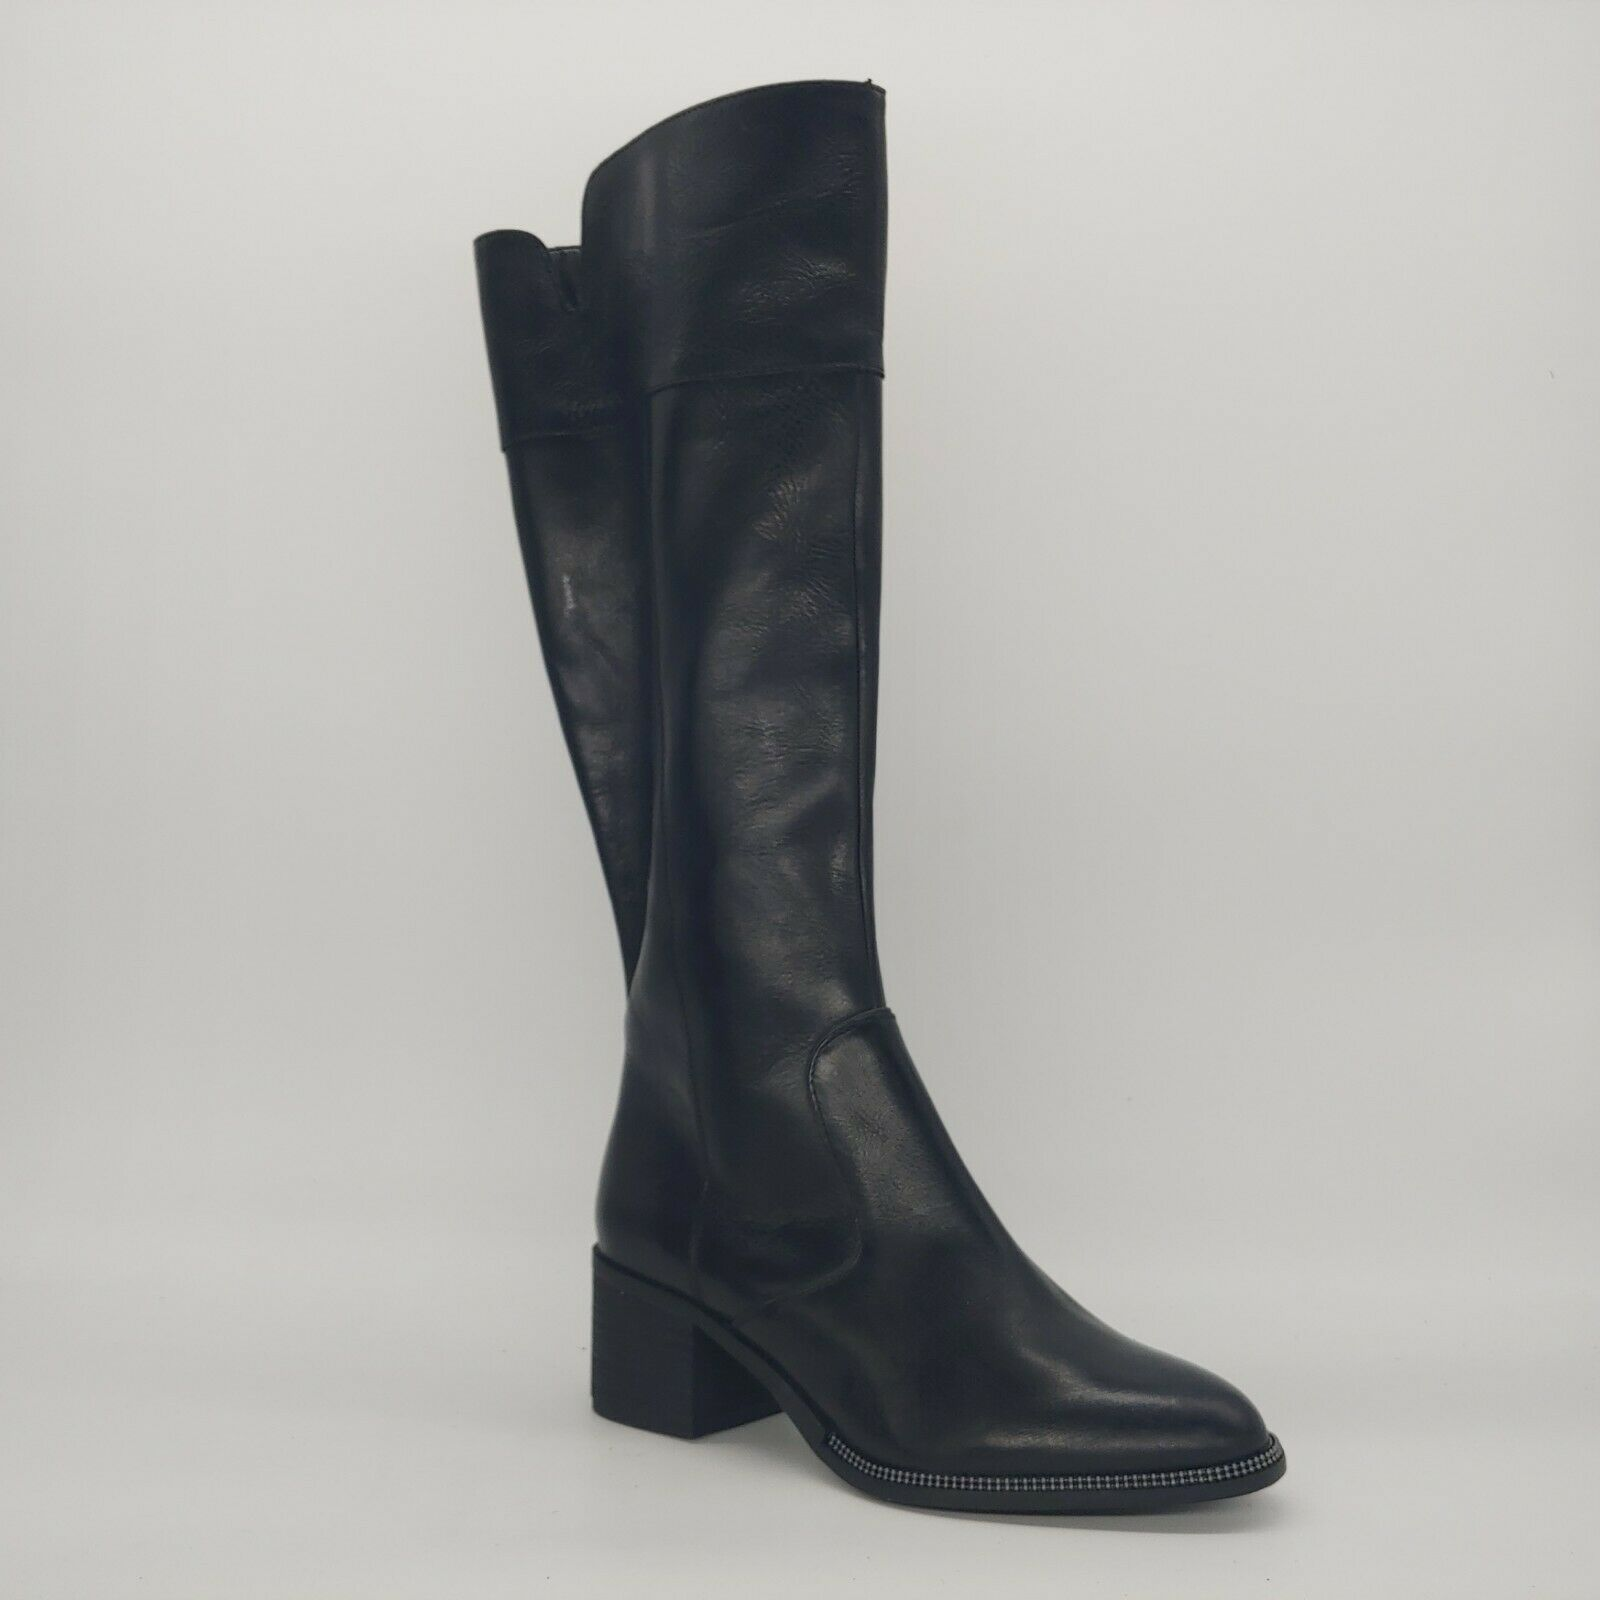 Primary image for Franco Sarto Womens Lucianna Riding Boots Black Leather Block Heel Zip 8.5 M New